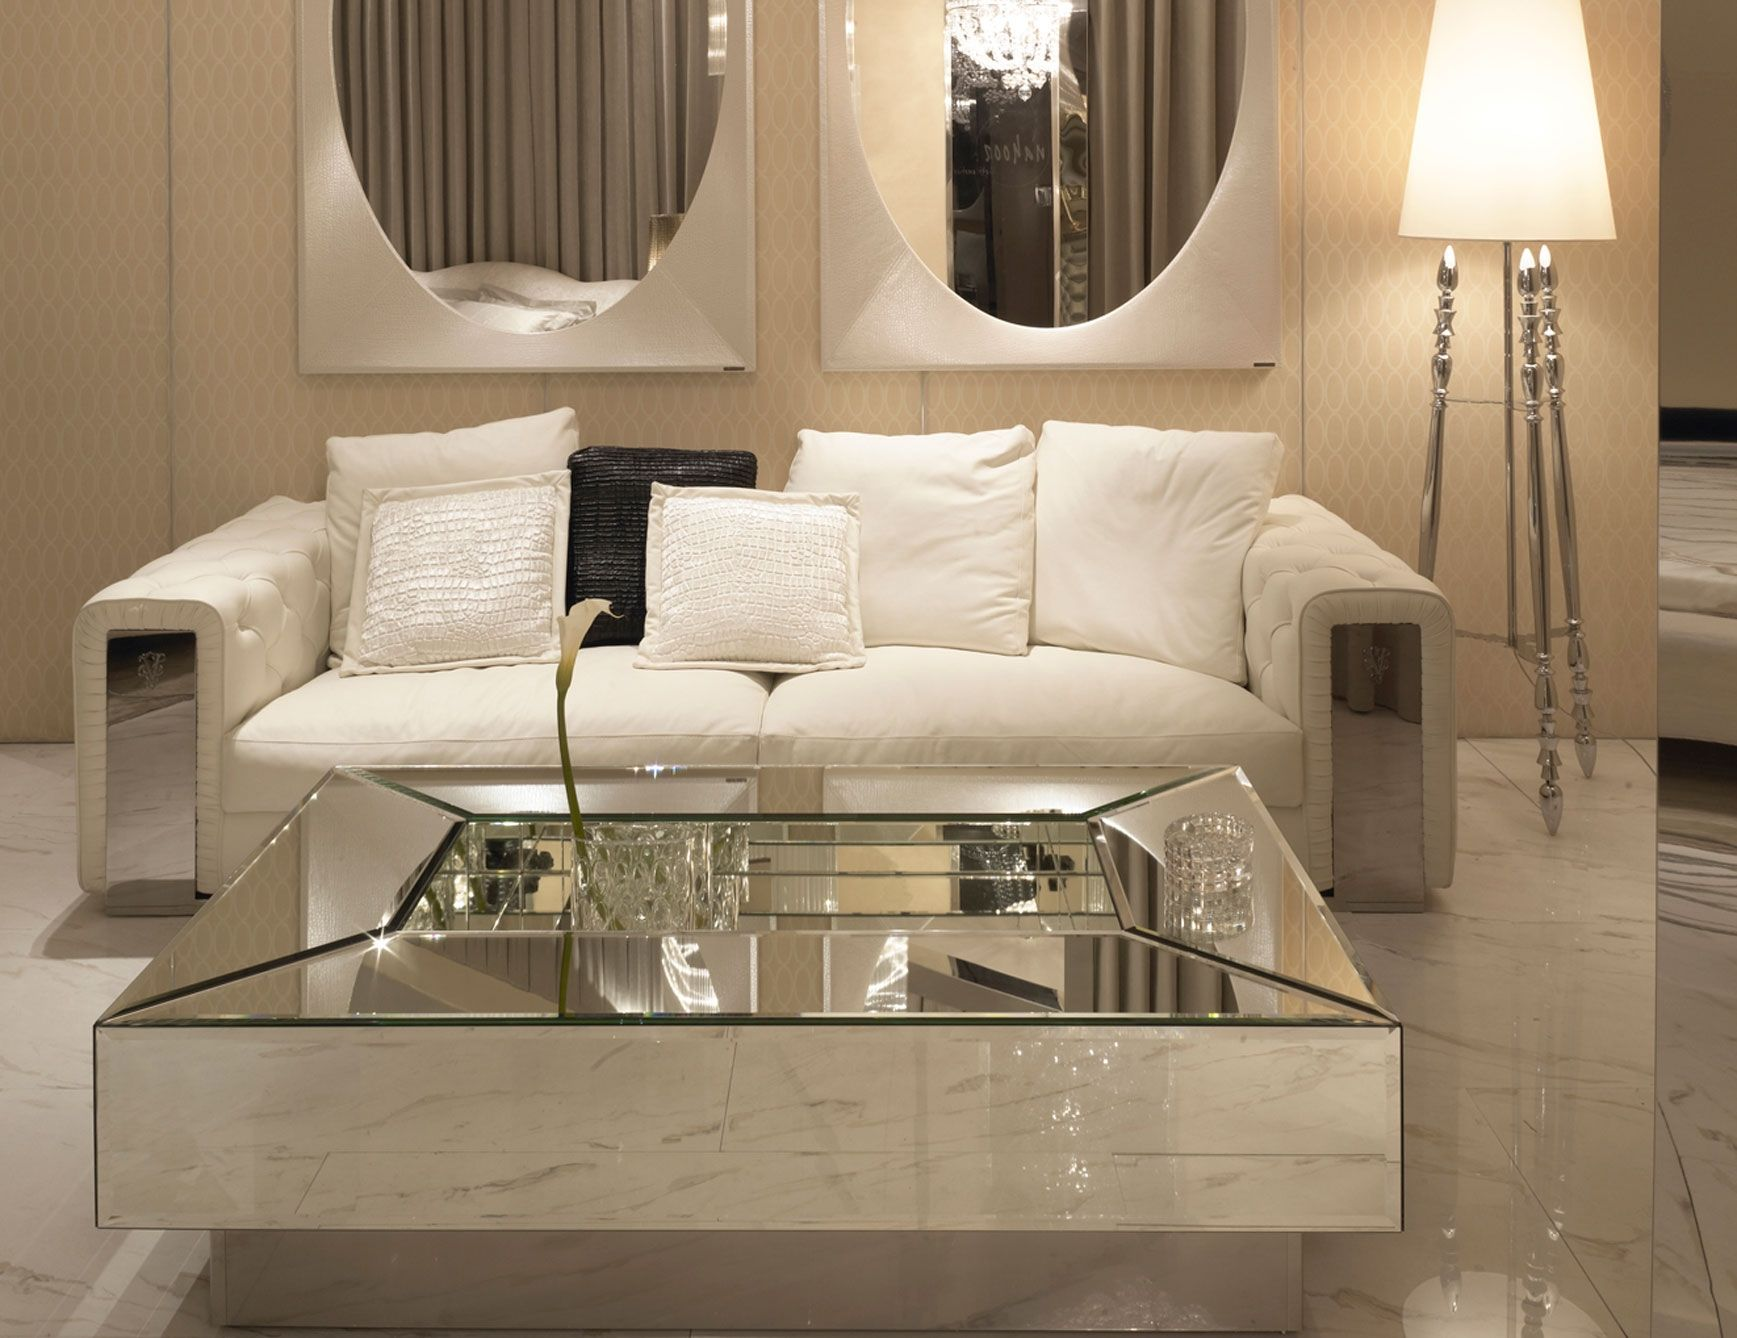 Mesmerizing Mirrored Coffee Table with Glass and Wood Combined  Furniture Modern Minimalist Living Room Design